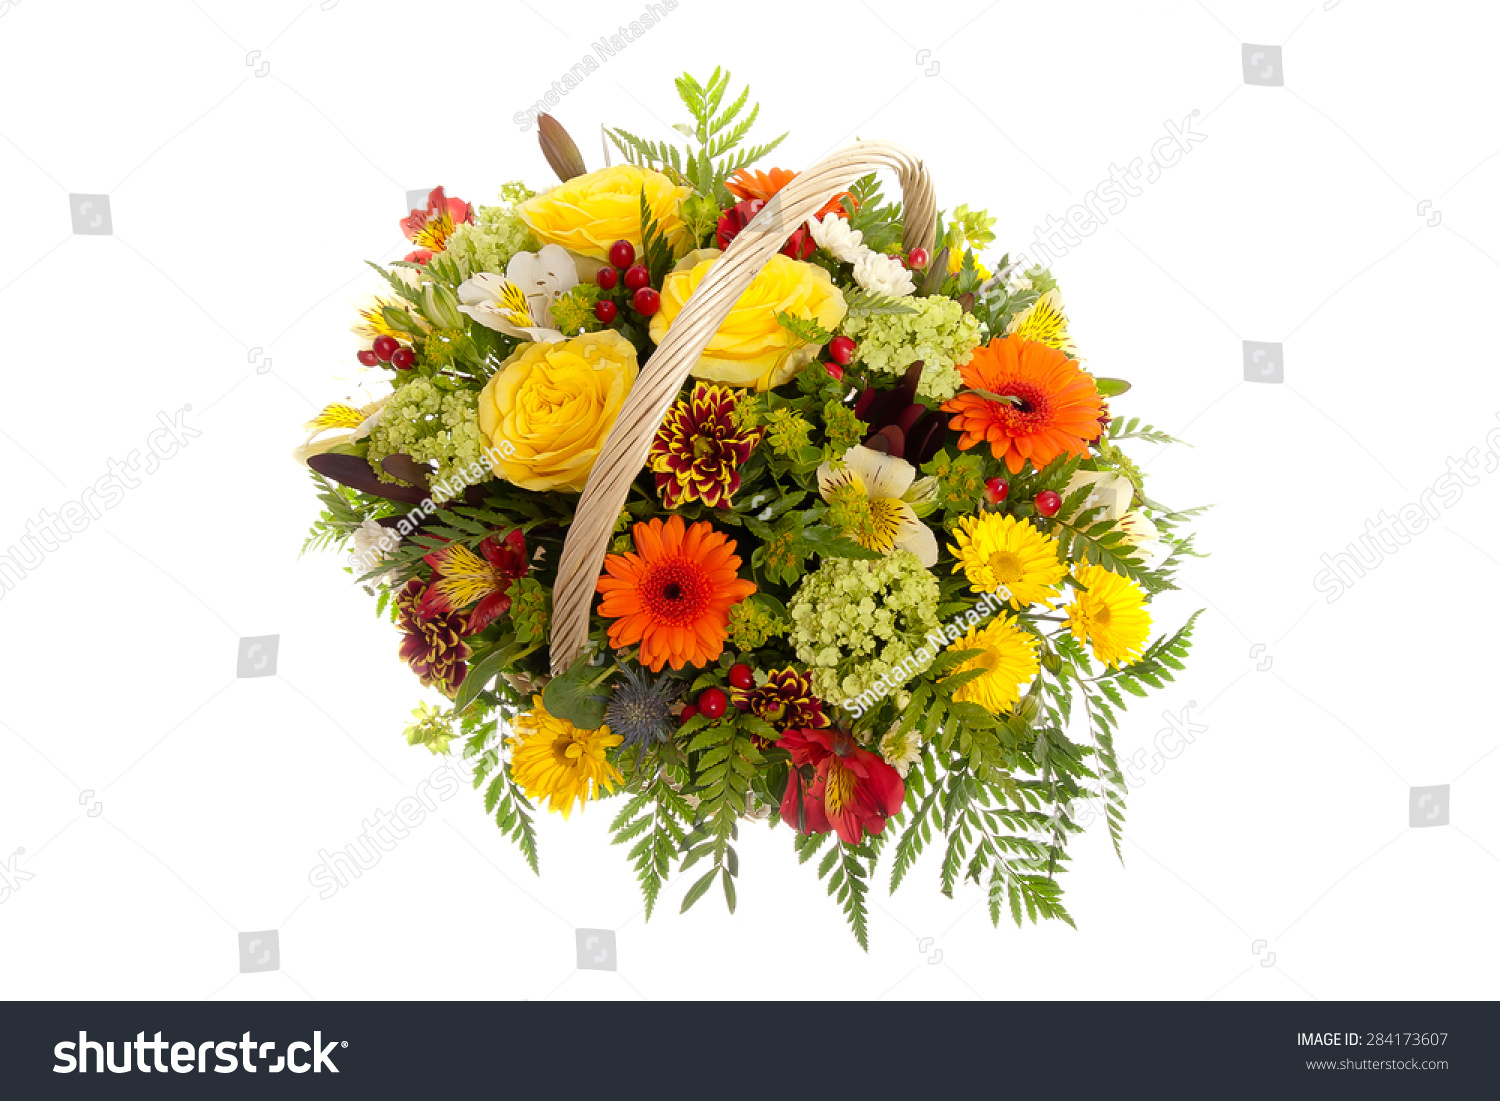 Beautiful flowers in a basket isolated on white ez canvas id 284173607 izmirmasajfo